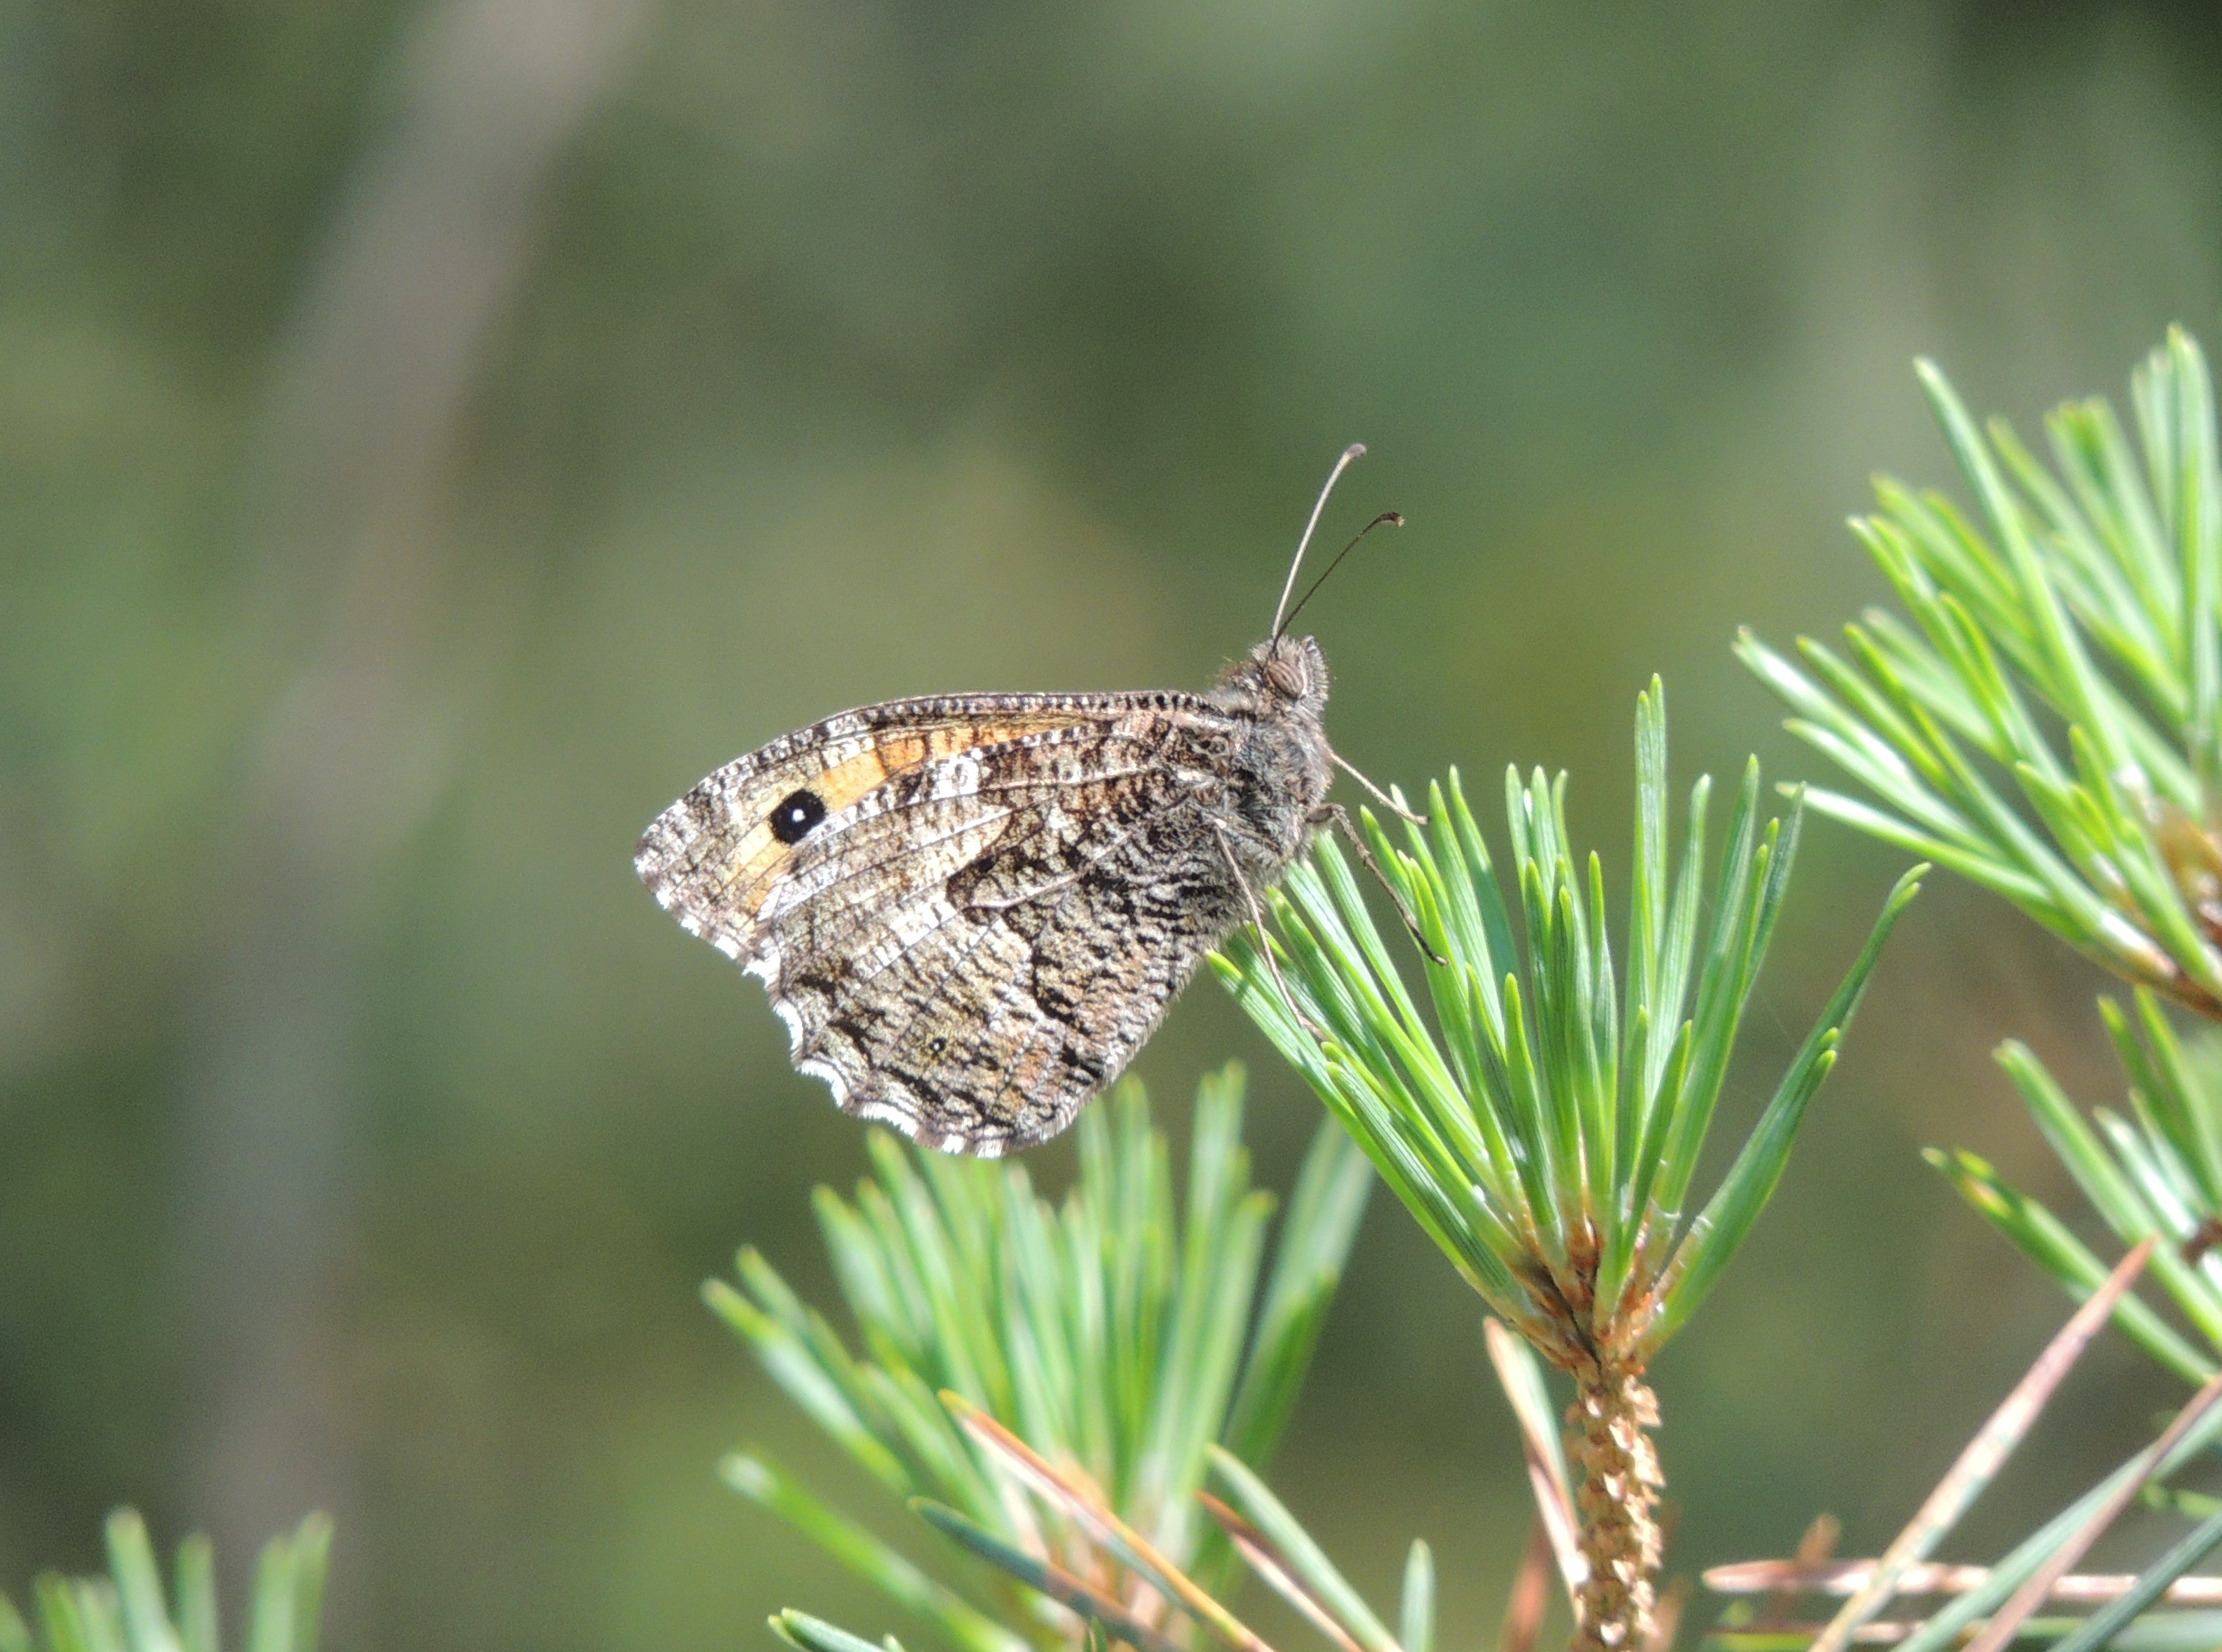 grayling chat sites Download royalty-free images, high resolution stock photos, vector art and illustrations from thinkstock  high quality, affordable stock photography subscriptions.